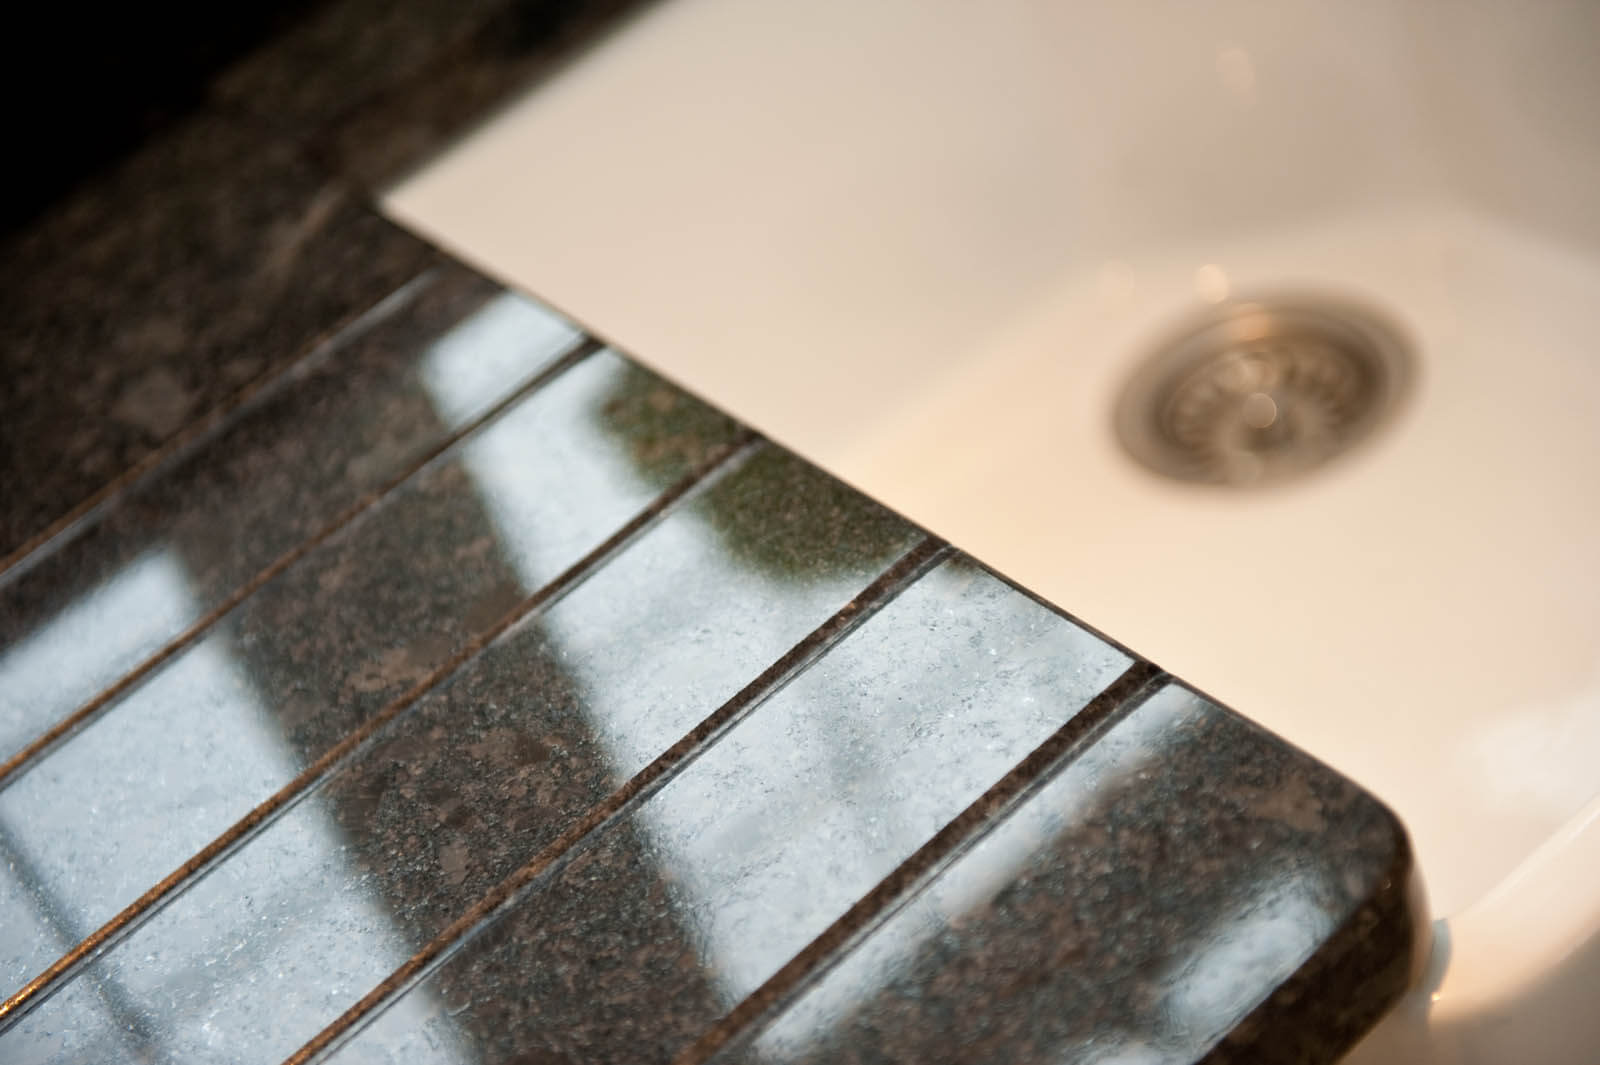 steel-grey-granite-cuckfield-sussex-kitchens-113611-a-drainage-grooves-detail_1